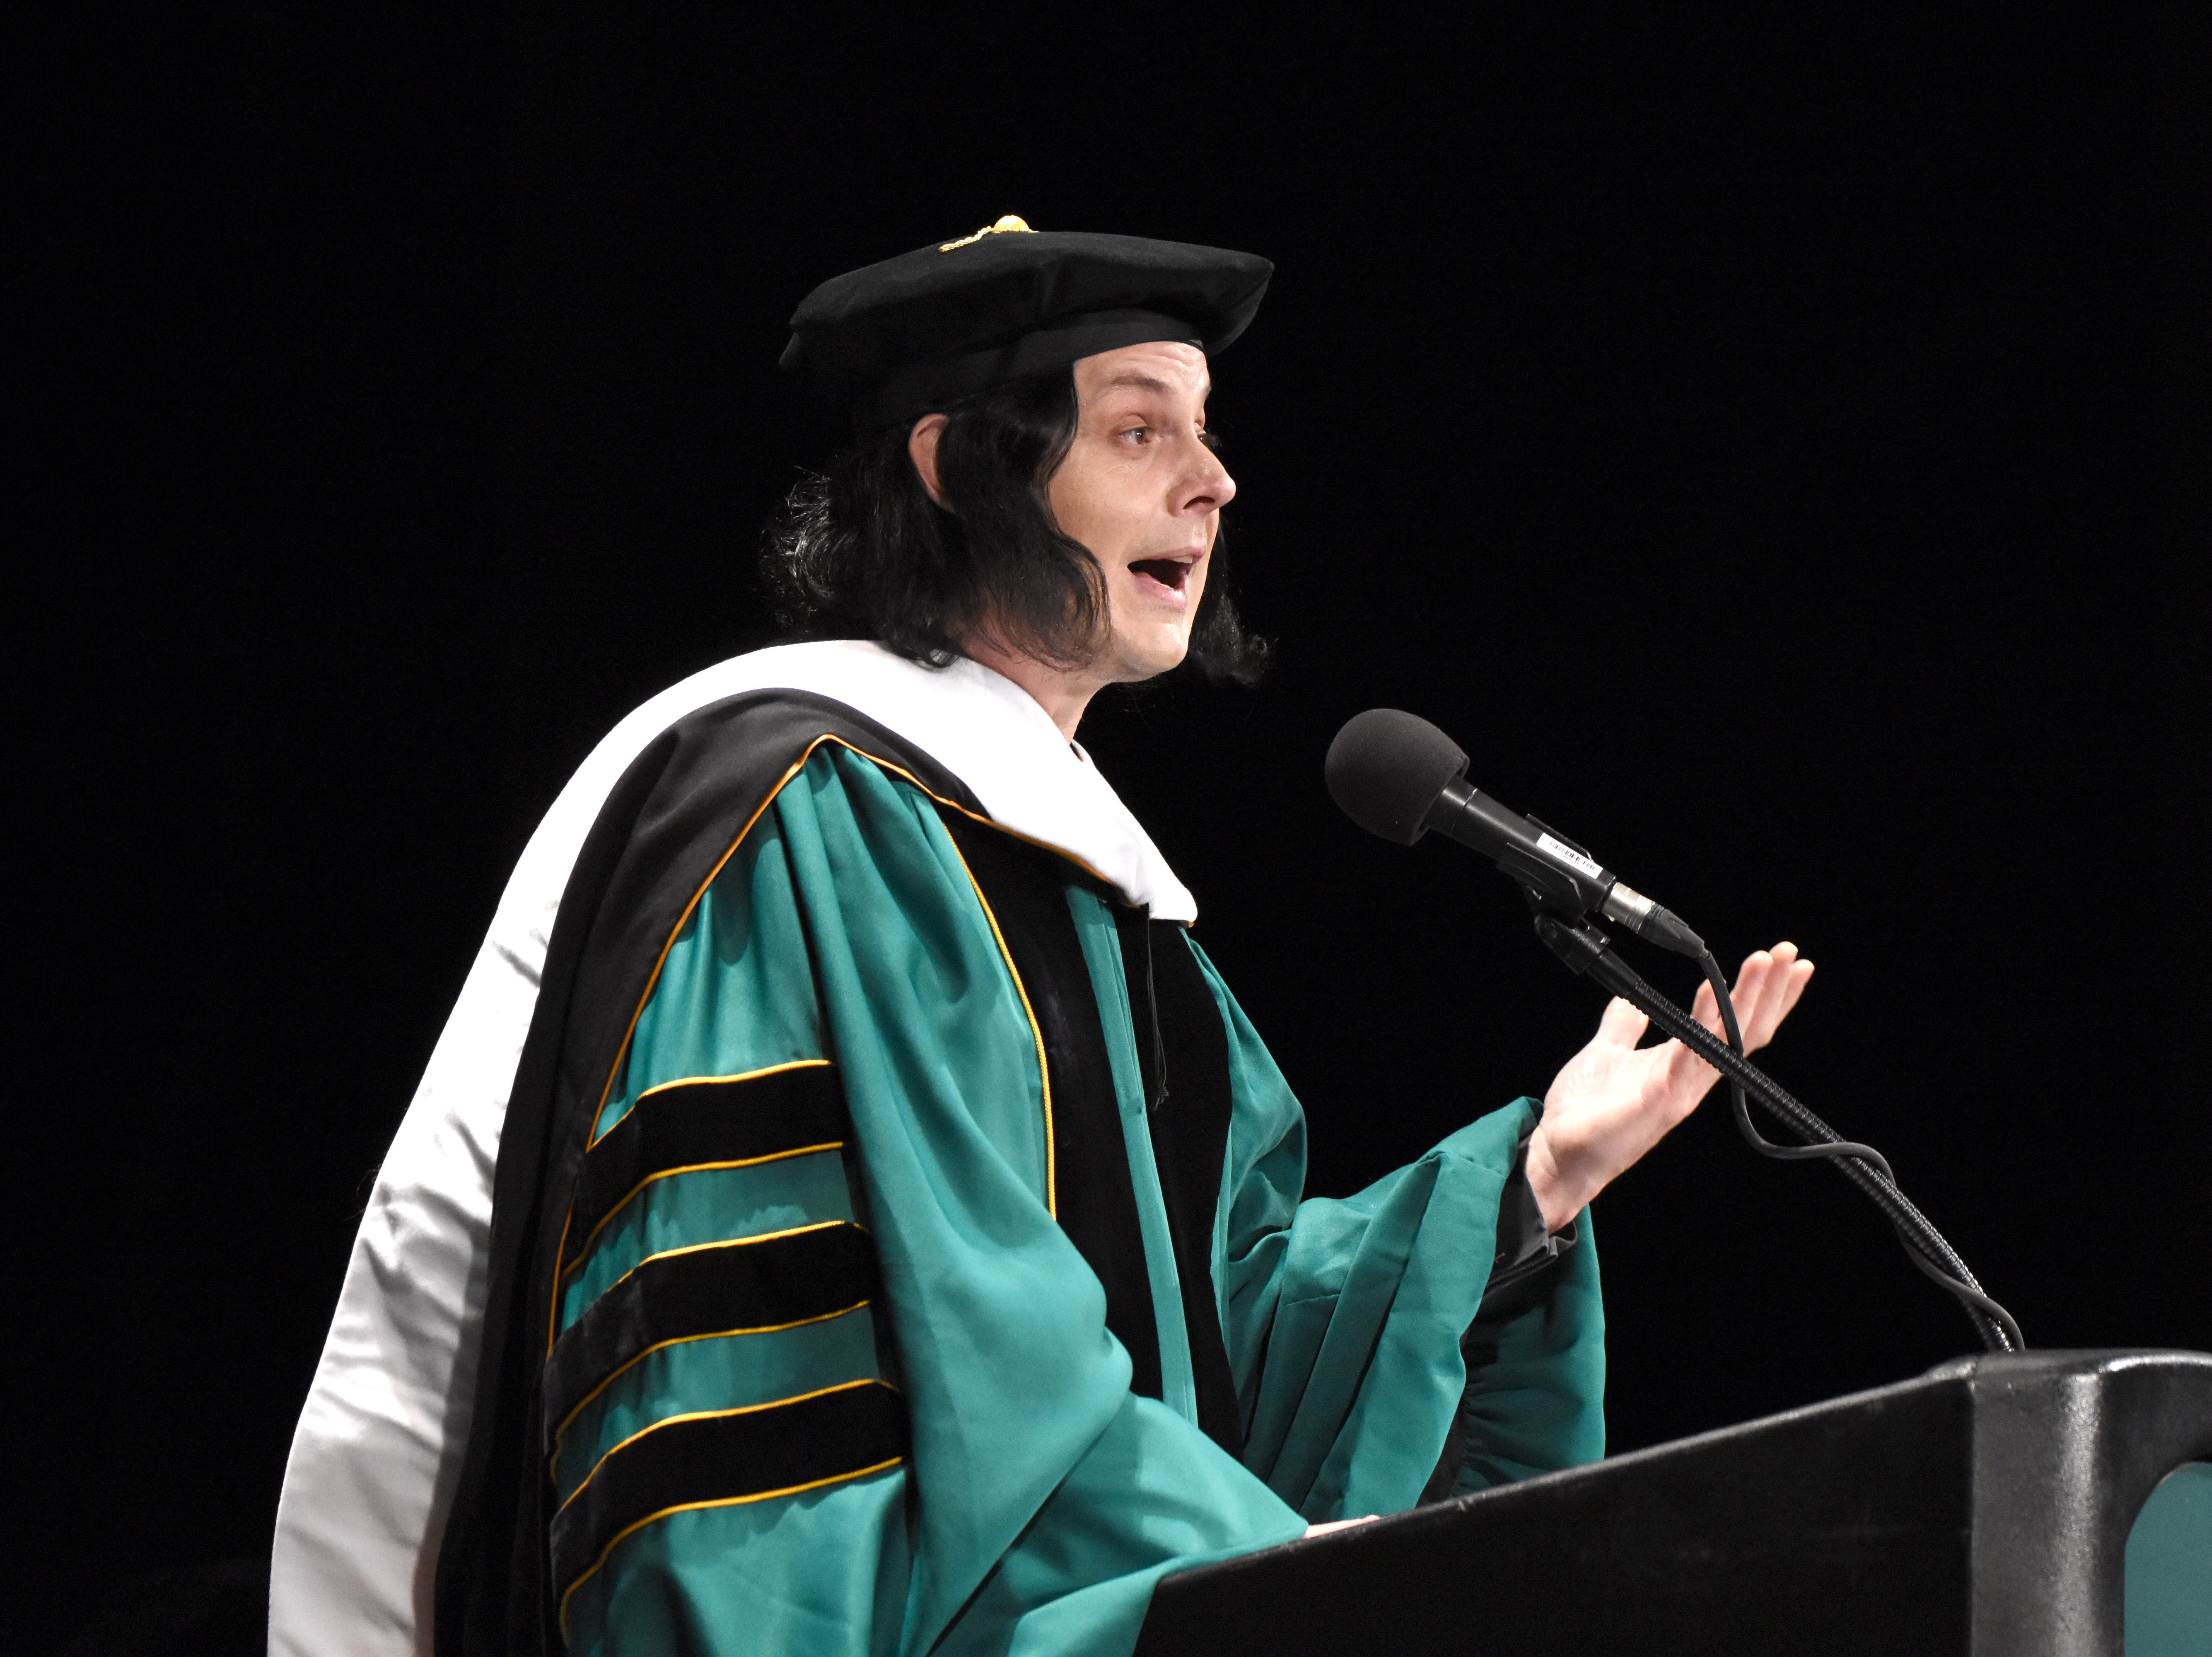 Musician Jack White addresses graduates after receiving an honorary degree during the Wayne State University commencement exercises at the Fox Theatre on Friday, May 3, 2019.